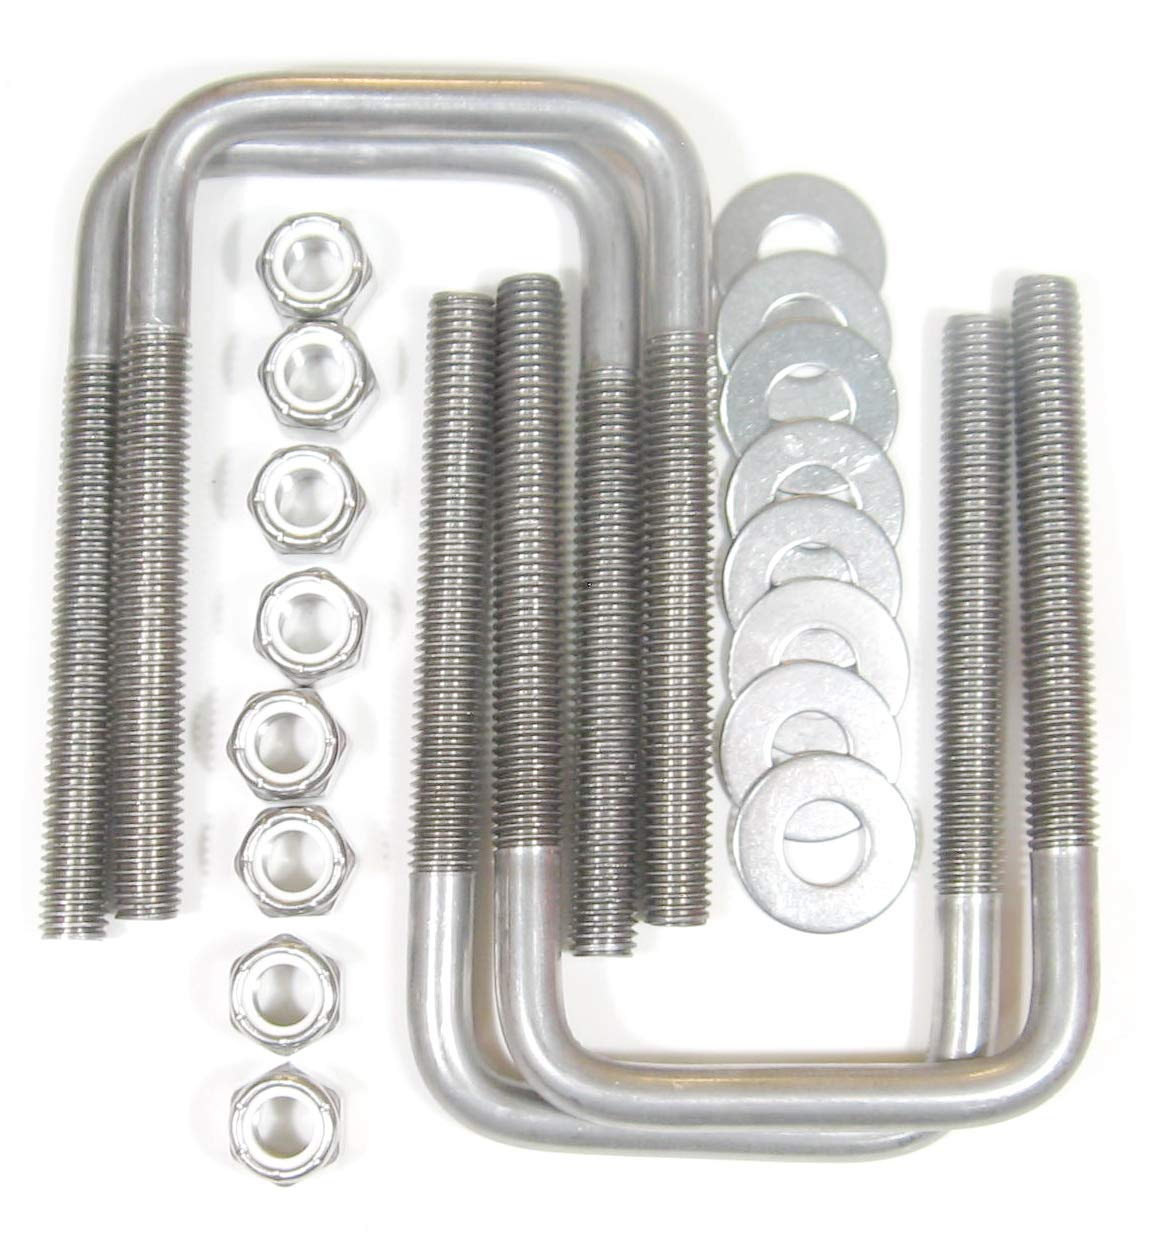 4 Stainless Steel Square U-Bolts Boat Trailer U bolt Ubolt 1//2 D x 3 1//16 W x 5 5//16 L